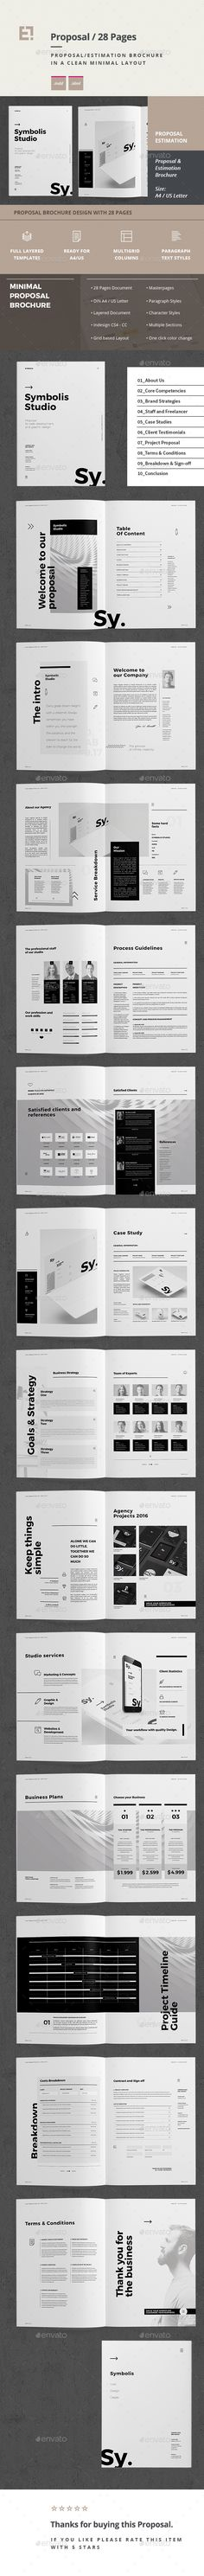 Proposal by egotype Proposal and Portfolio Template Minimal and Professional Proposal Brochure template for creative businesses, created in Adobe InDe